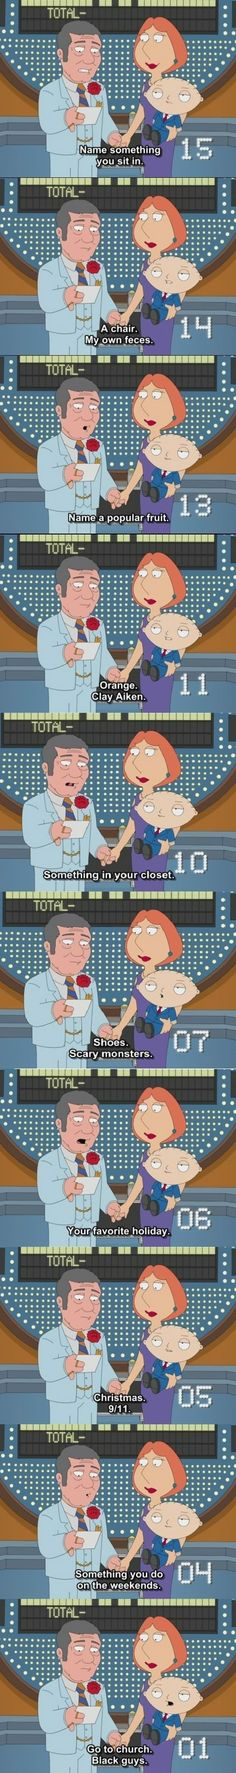 Lois and Stewie's answers // funny pictures - funny photos - funny images - funny pics - funny quotes - #lol #humor #funnypictures